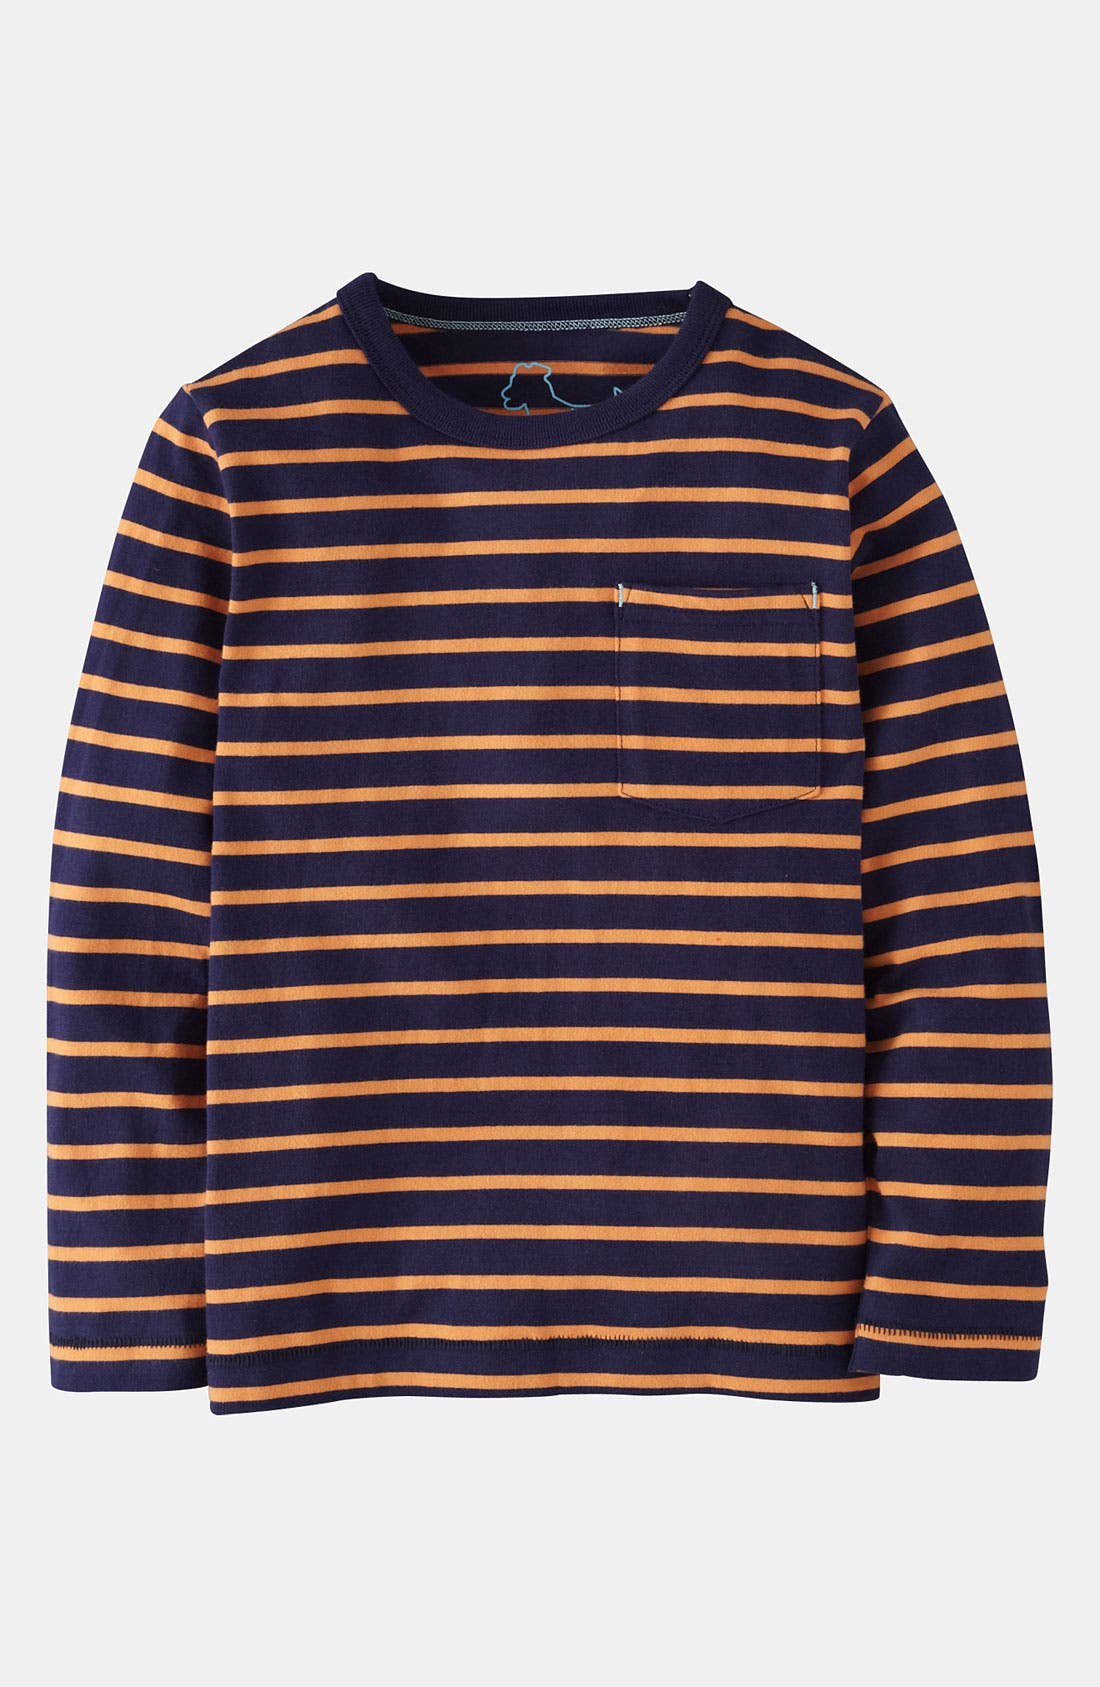 Alternate Image 1 Selected - Mini Boden Stripe T-Shirt (Little Boys & Big Boys)